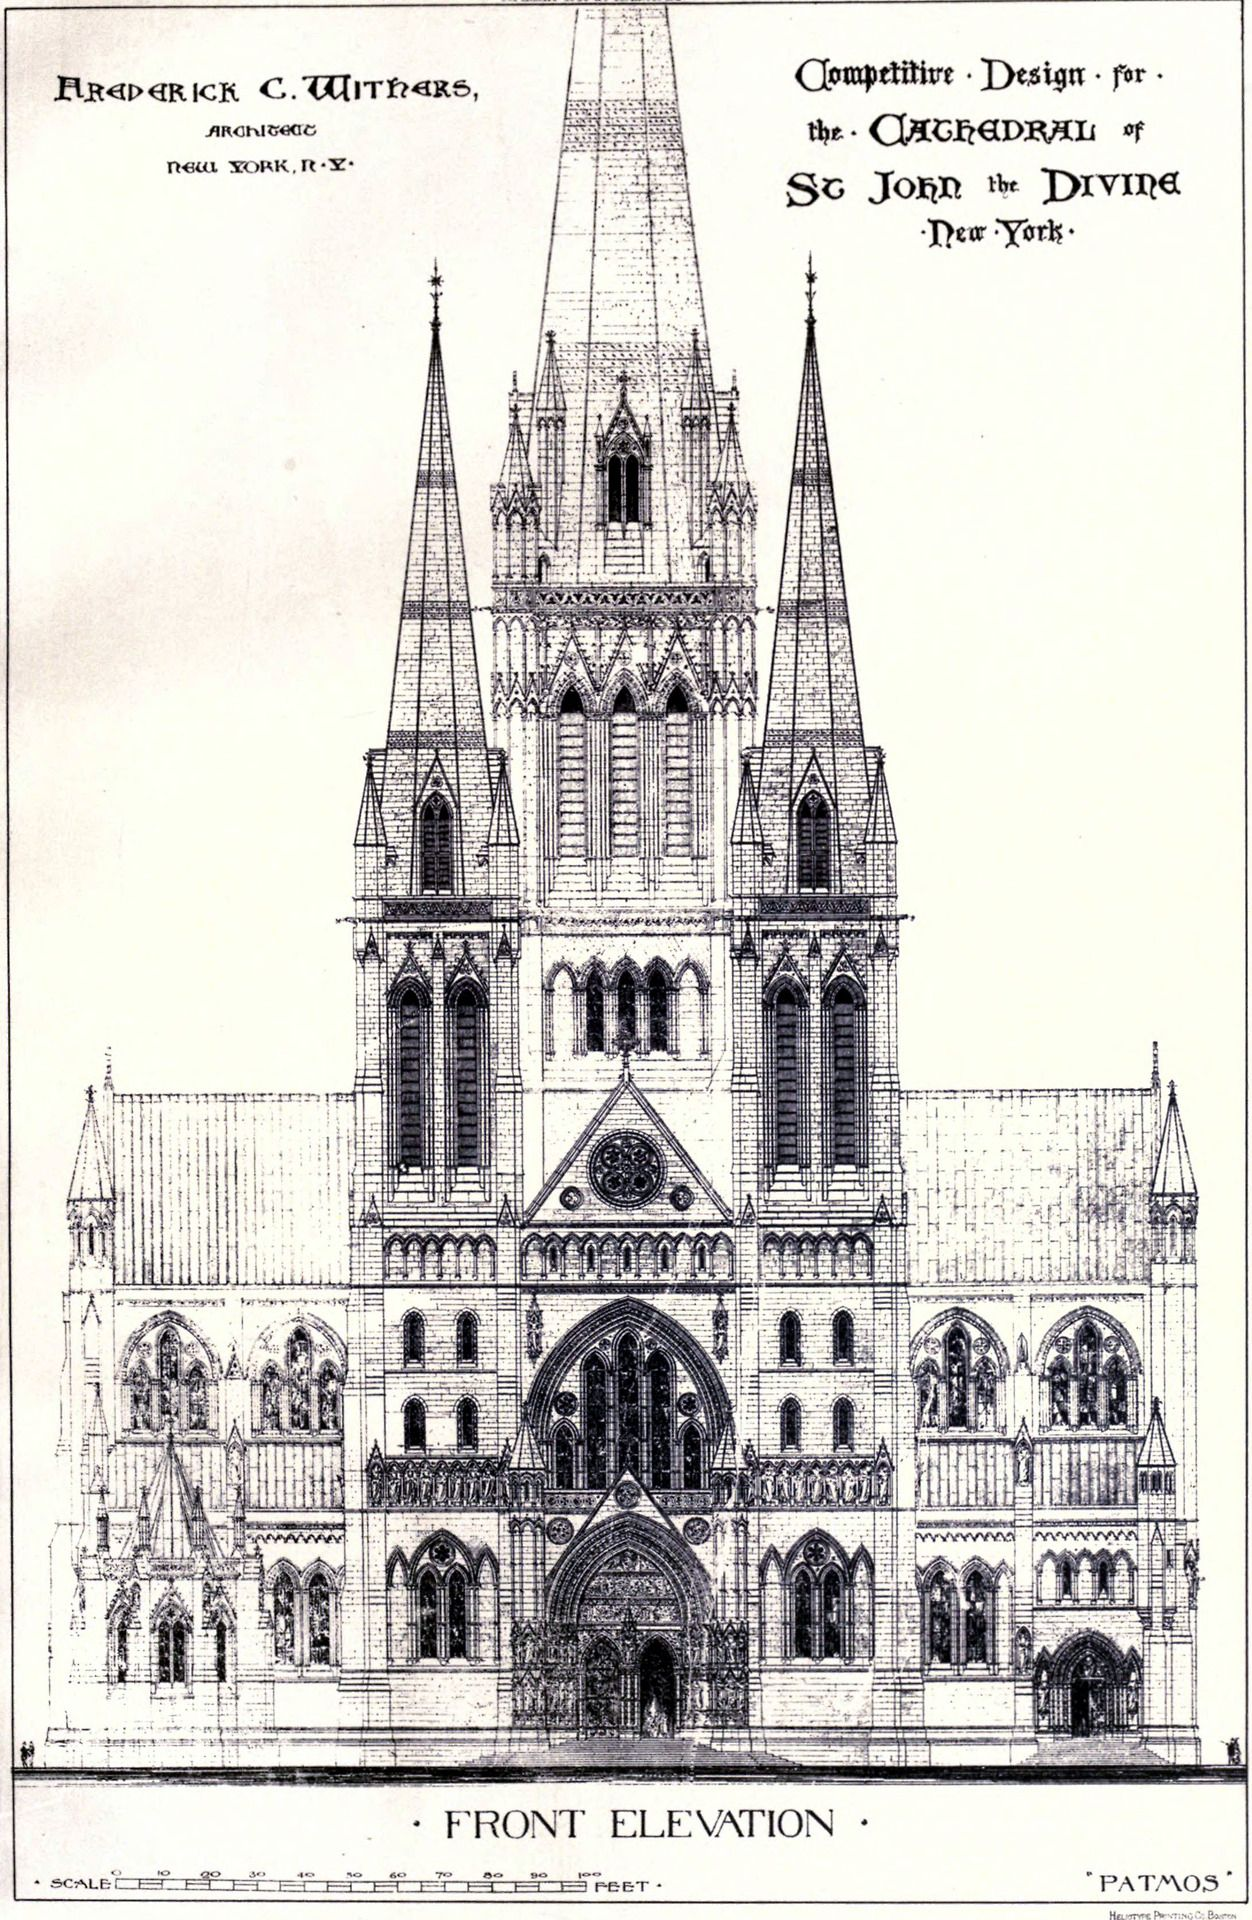 withers u0027s design for the cathedral of st john the divine new